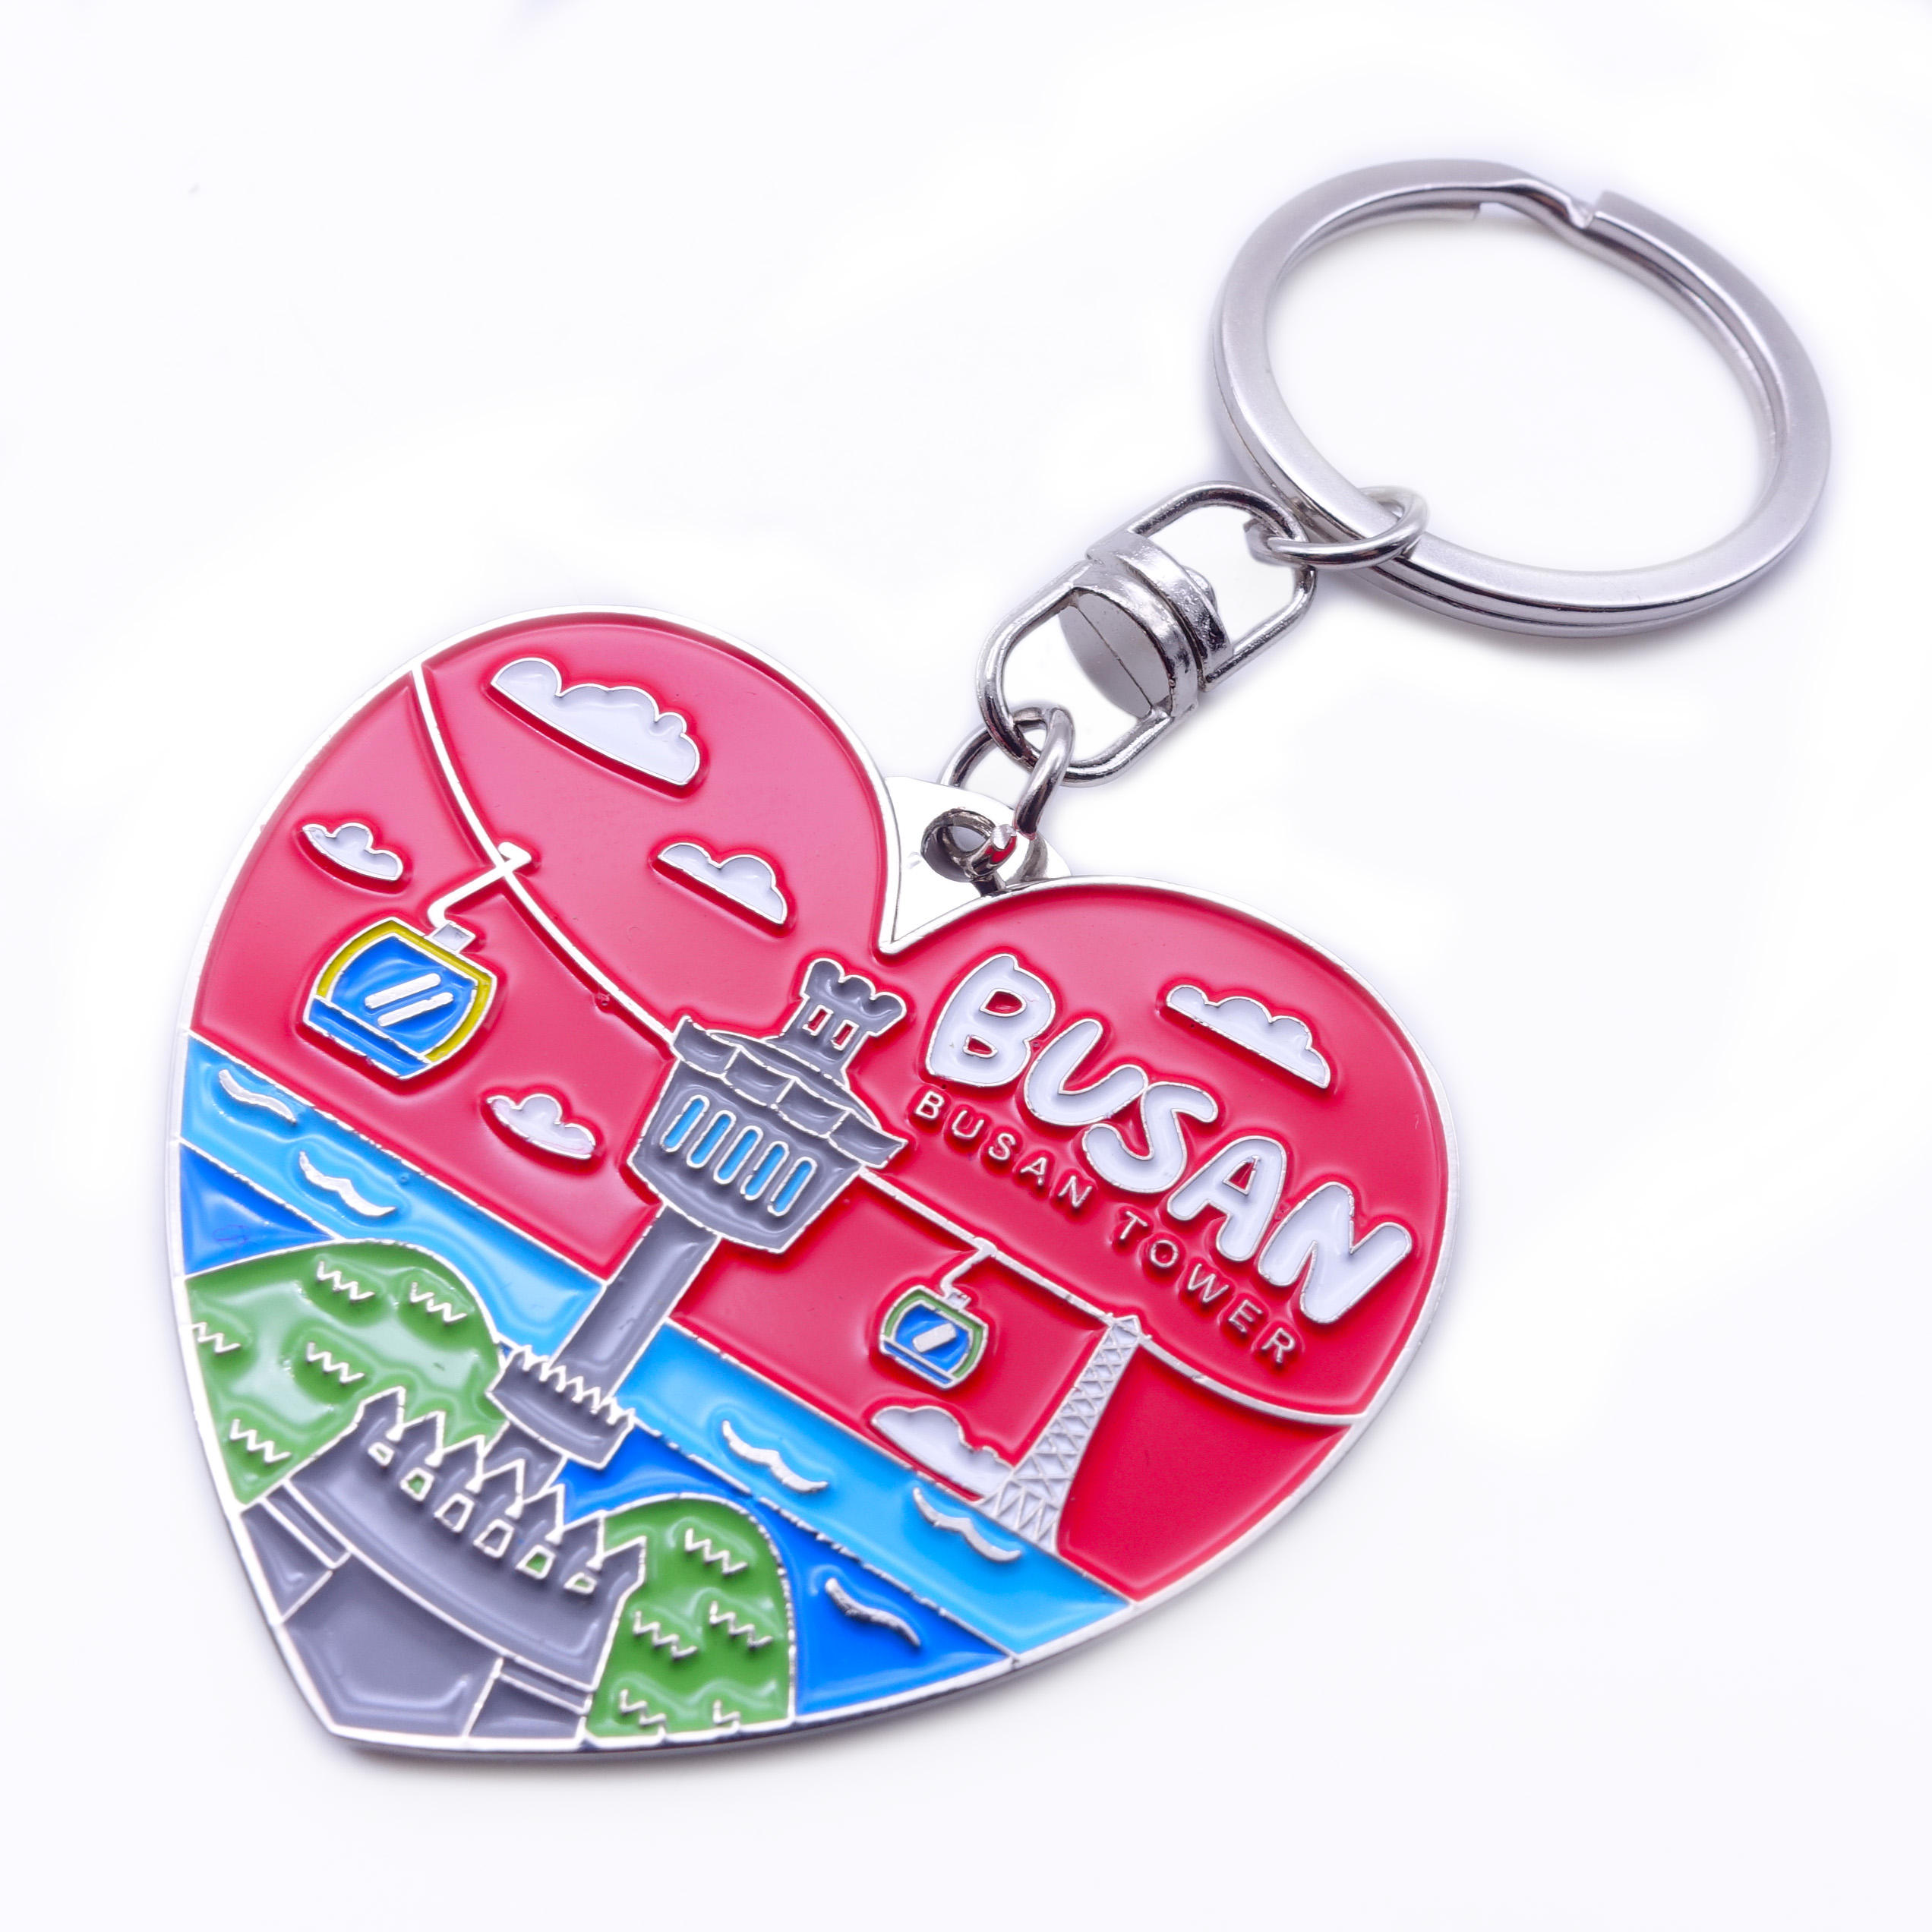 Personalized Creative Kirsite Zinc Alloy Iron Souvenir Metal Soft Hard Enamel Keychain Keyring Custom